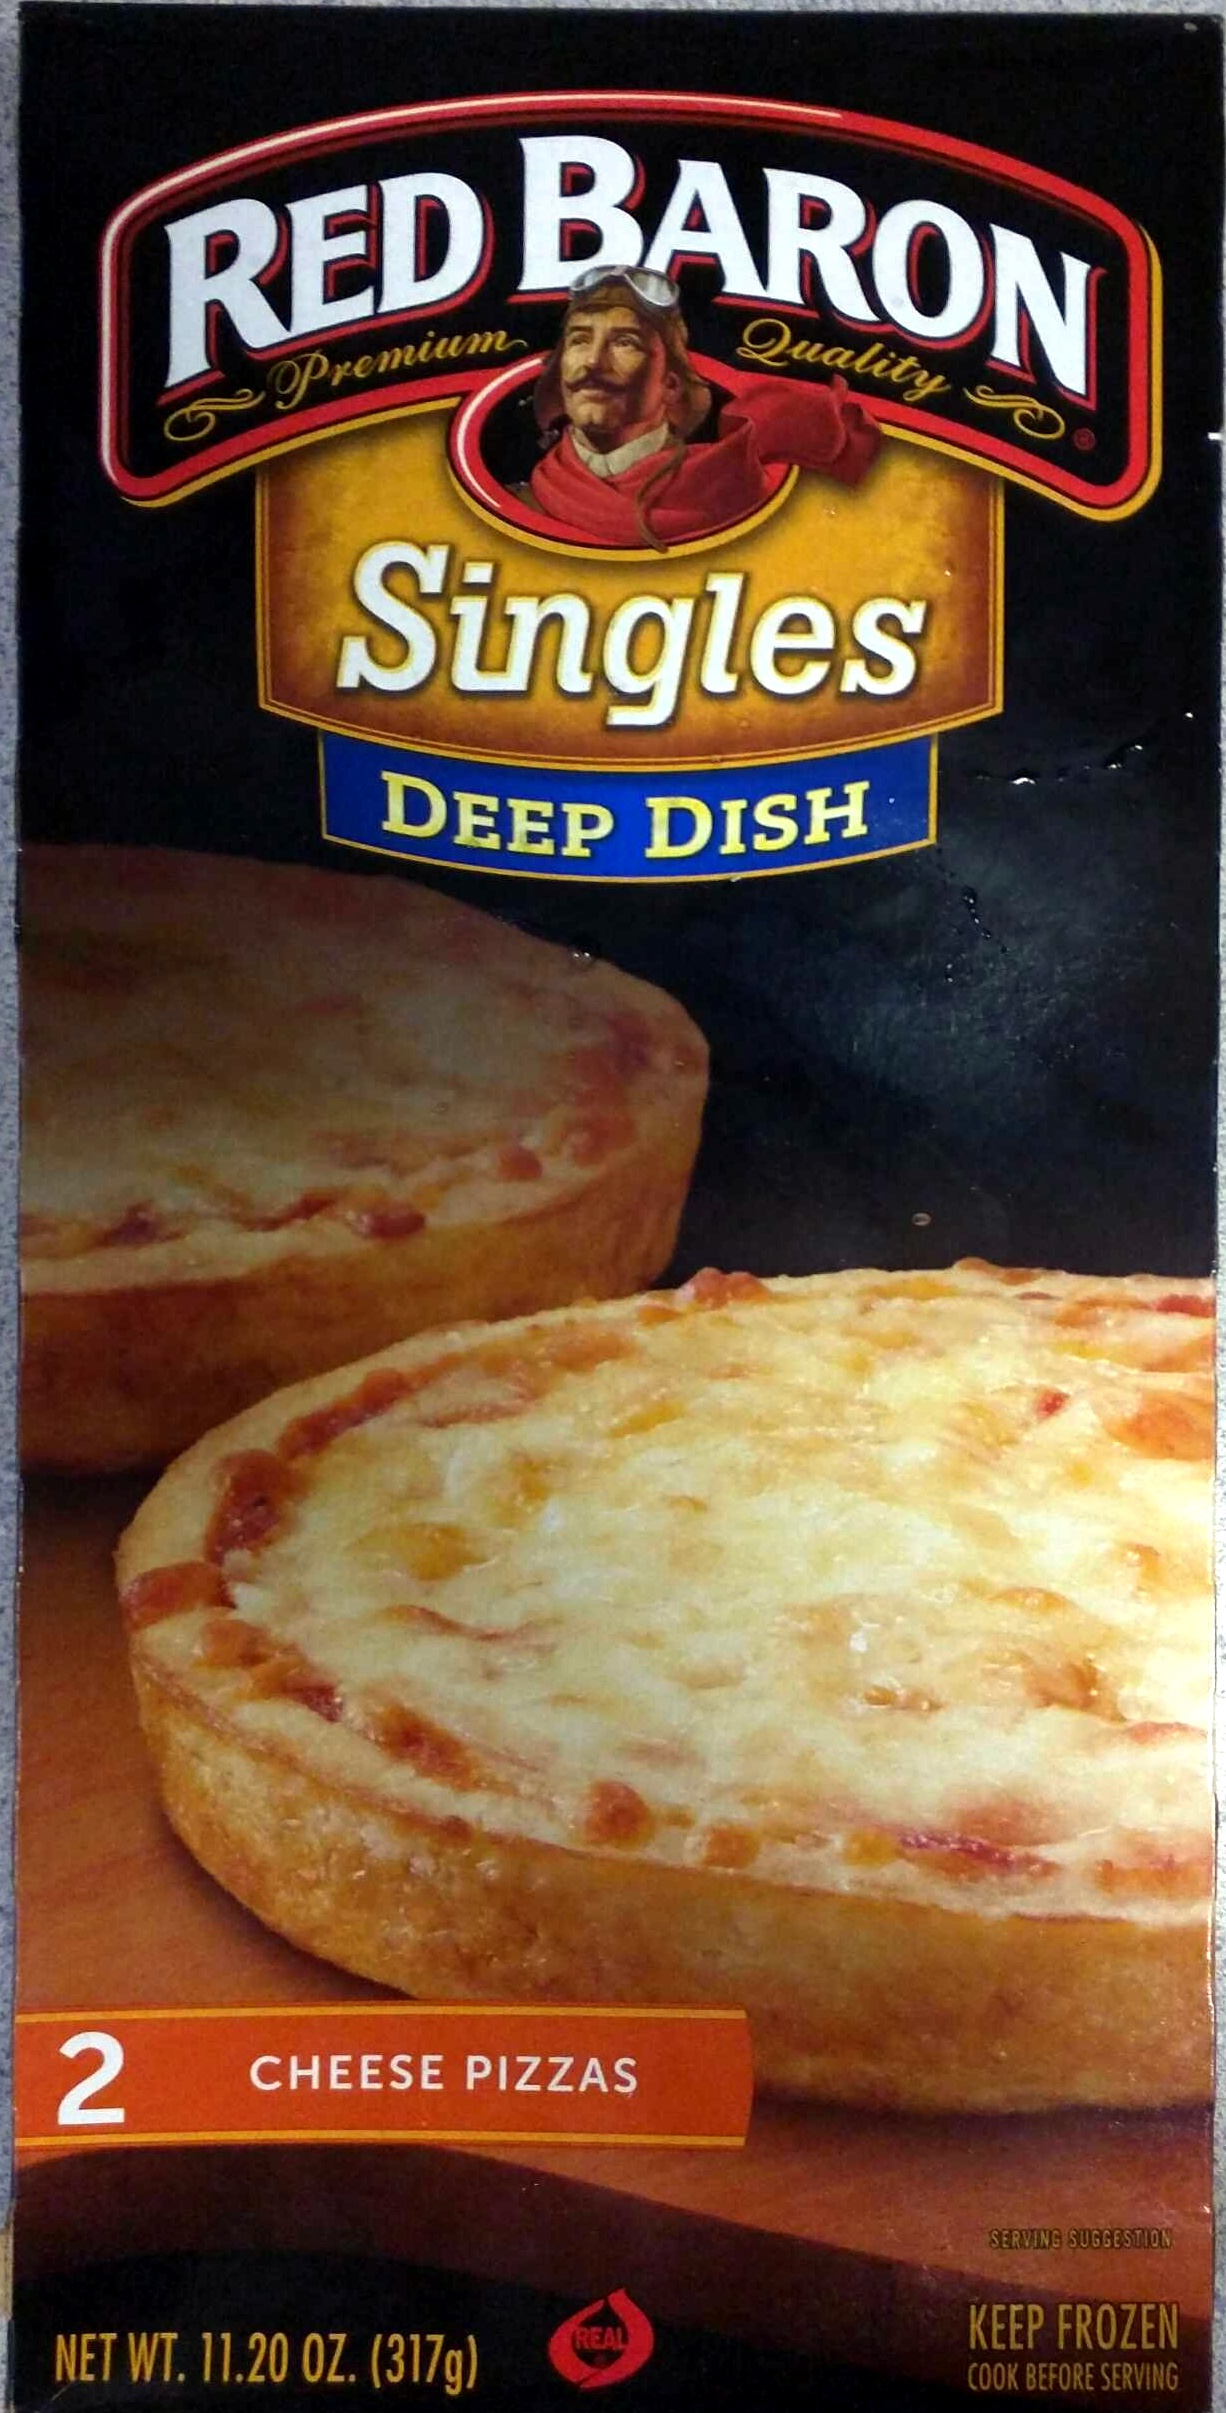 Red baron, singles deep dish pizzas, cheese - Product - en